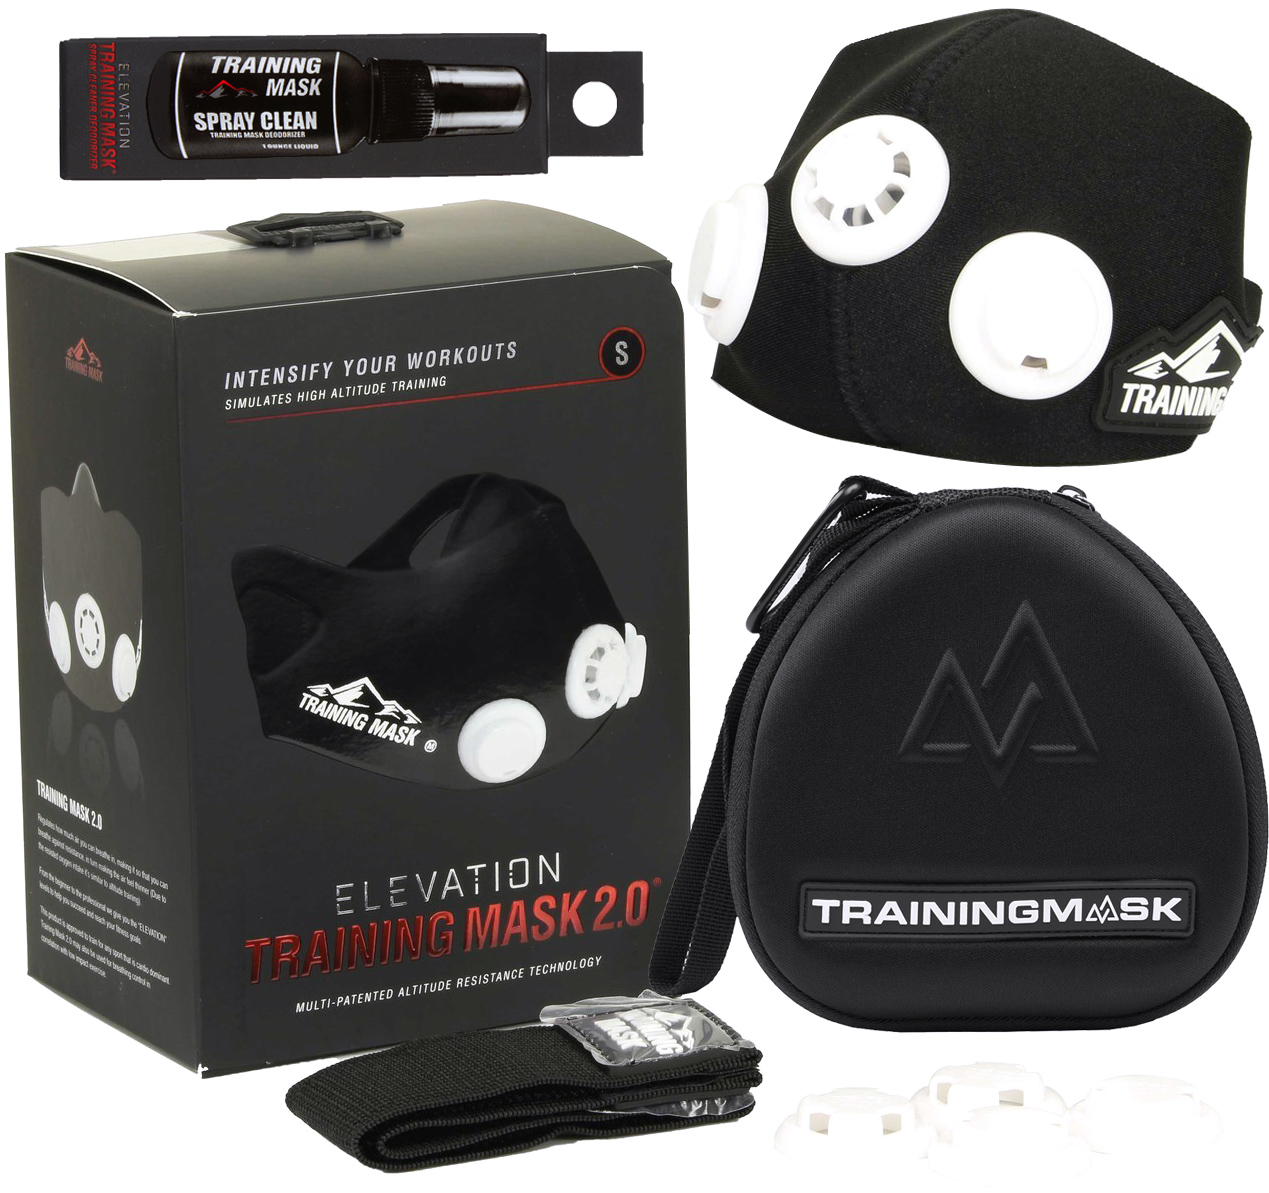 Increase Cardio Training Mask 2.0 Blackout Edition Cleaner- All Sizes Case